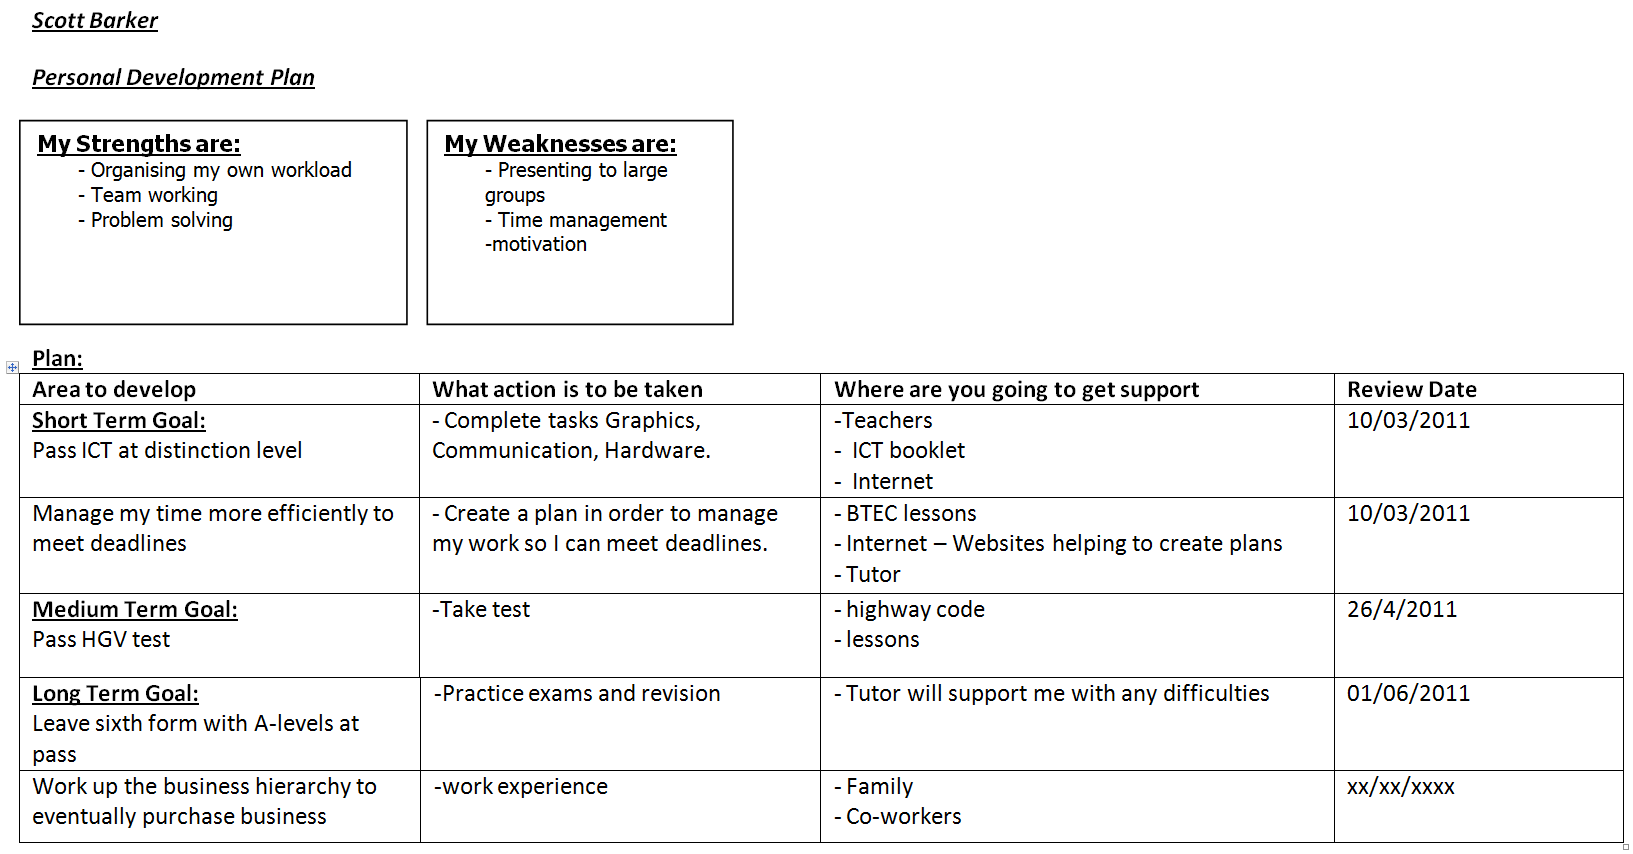 personal development plan example for students Google Search – Example of a Personal Development Plan